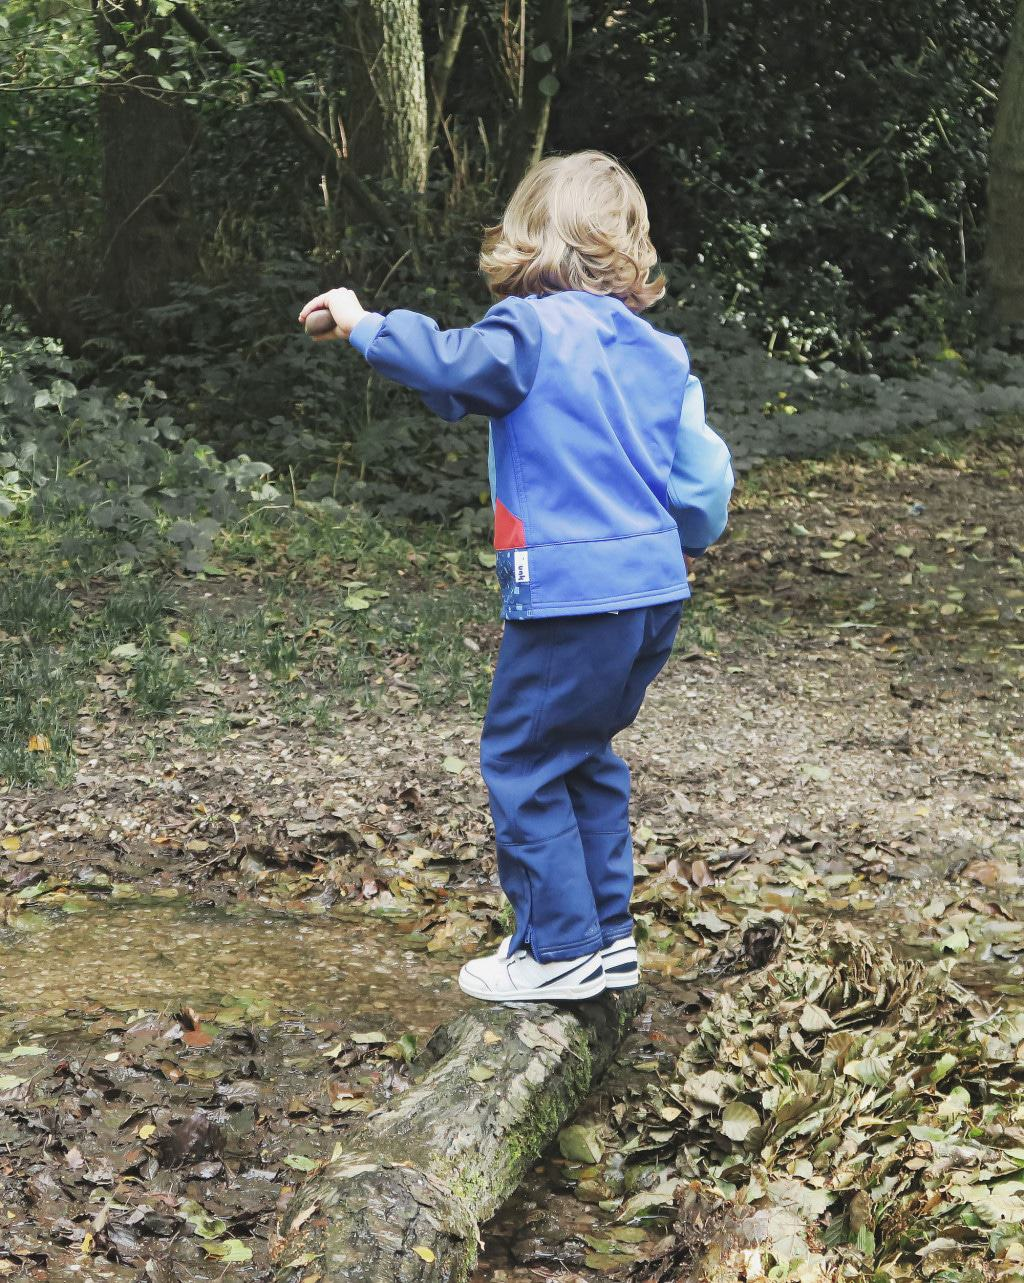 Kidunk clothing is great for active outdoor kids